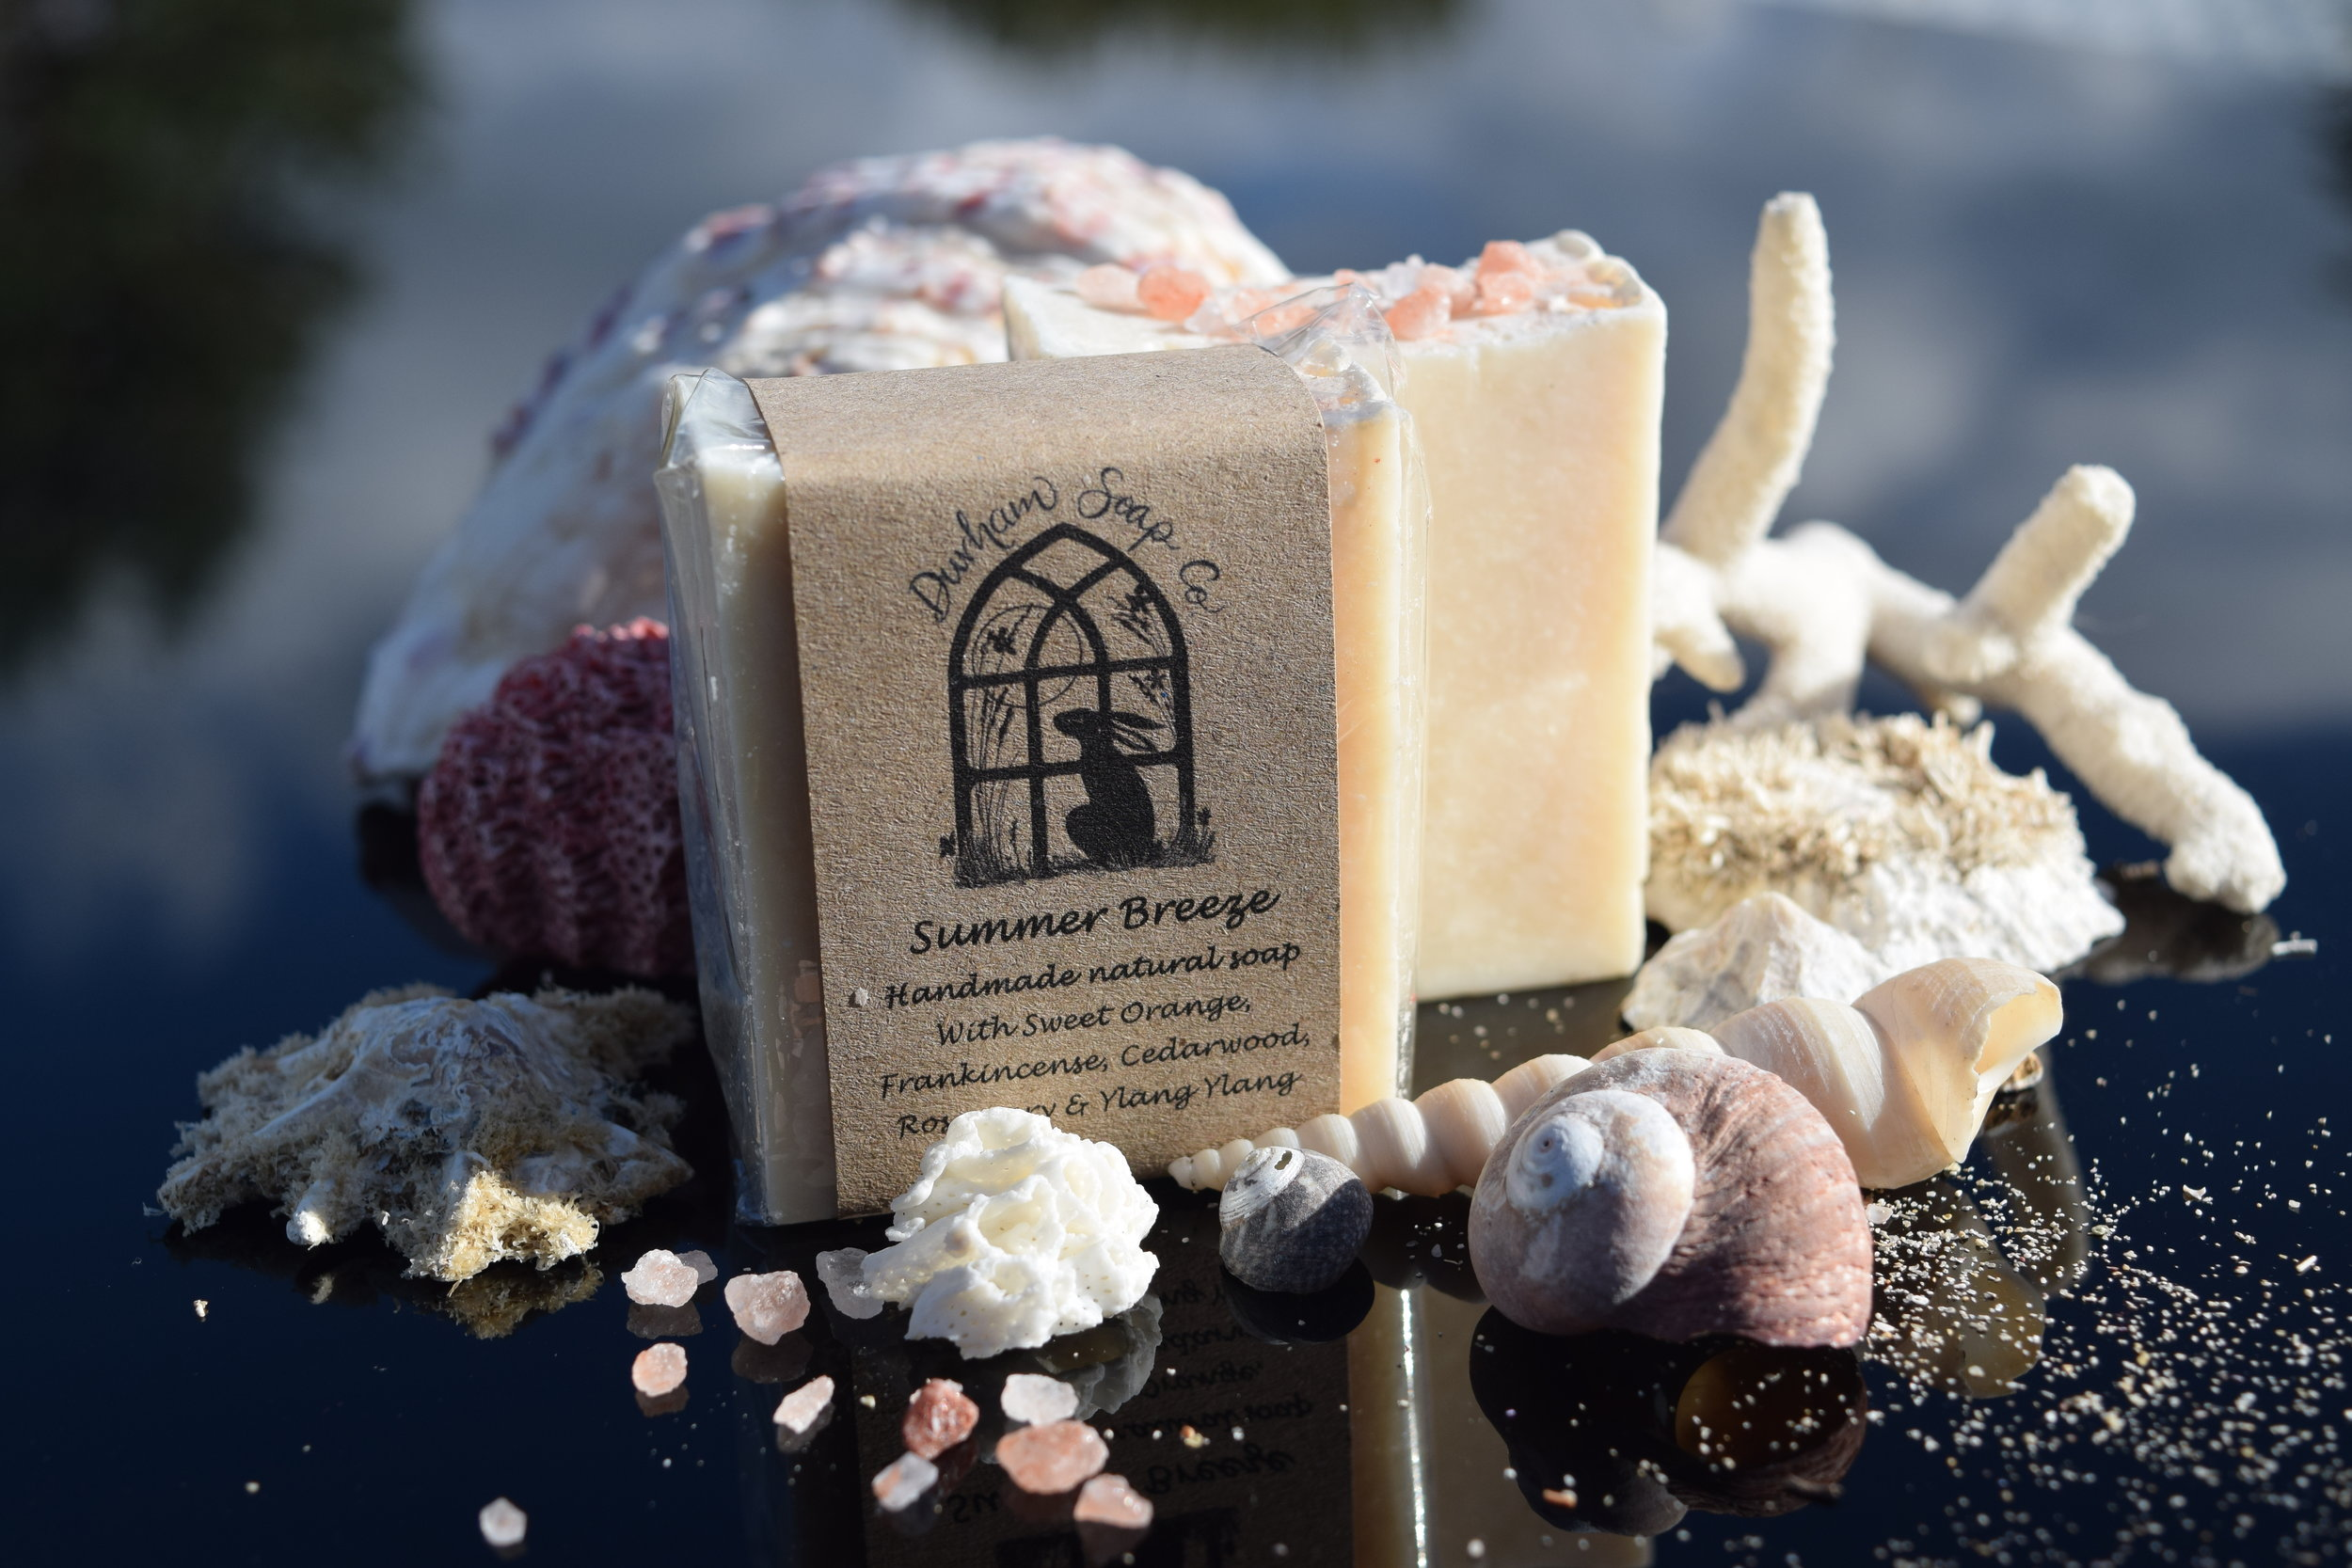 Summer Breeze - Natural soap, handmade with our blend of pure plant oils, enriched with moisturising shea butter, cocoa butter and castor oil for a rich and creamy lather. Our soap is fragranced with a blend of sweet orange, frankincense, rosemary, cedarwood and ylang ylang essential oils and sprinkled with pink Himalayan salt, to refresh the senses with a gentle sea breeze scent.Ingredients: Olive oil, coconut oil, sunflower oil, shea butter, cocoa butter, water, castor oil, Himalayan salt, sweet orange oil, ylang ylang oil, rosemary oil, cedarwood oil, frankincense oil, Vitamin E, benzyl benzoate*, benzyl salicylate*, farnesol*, limonene*, linalool*, * = occurs naturally in essential oils.Net weight: 100 g